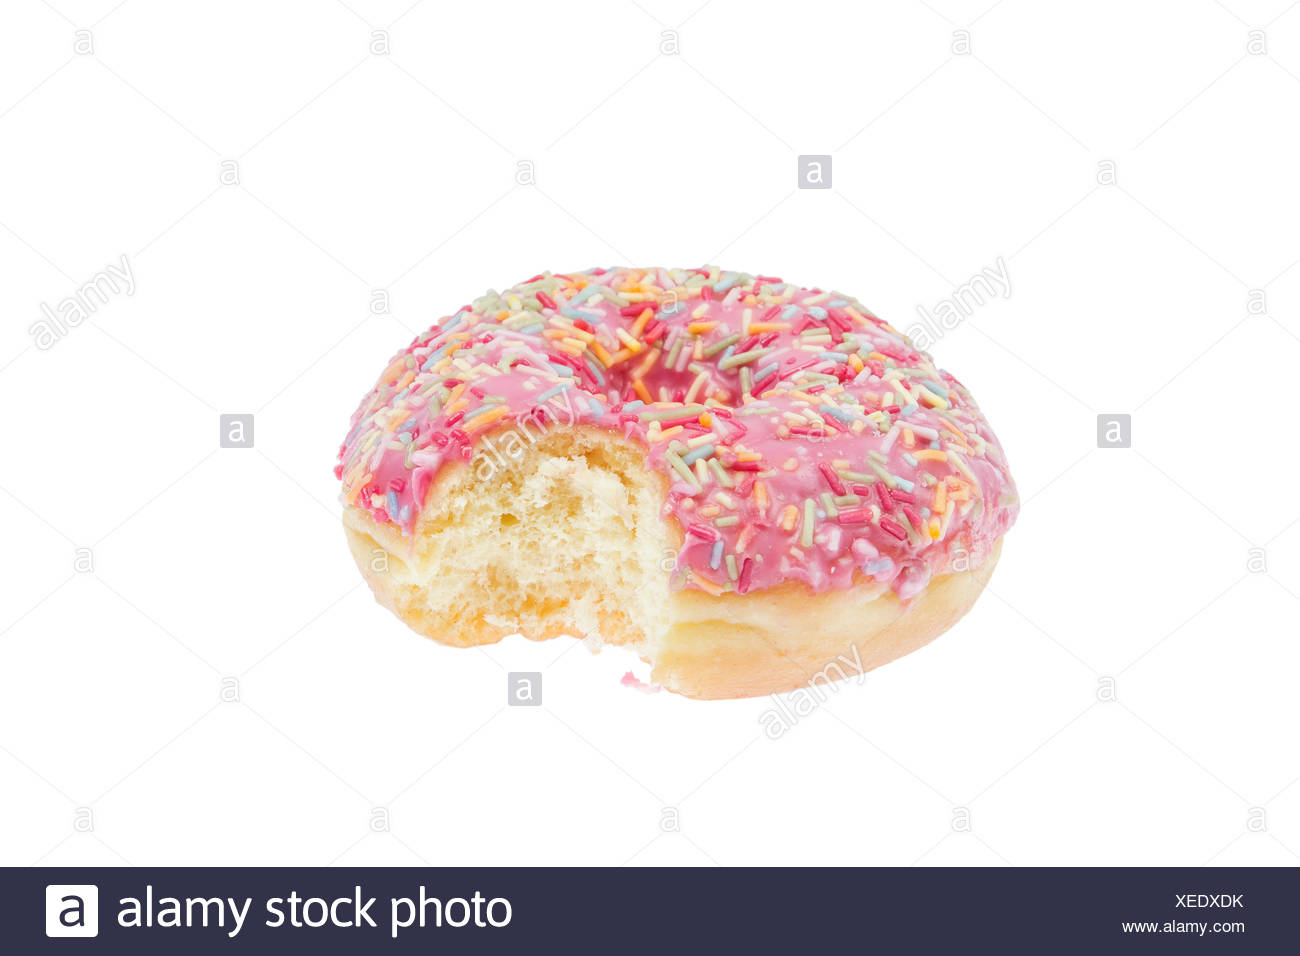 isolated donut with pink icing - Stock Image